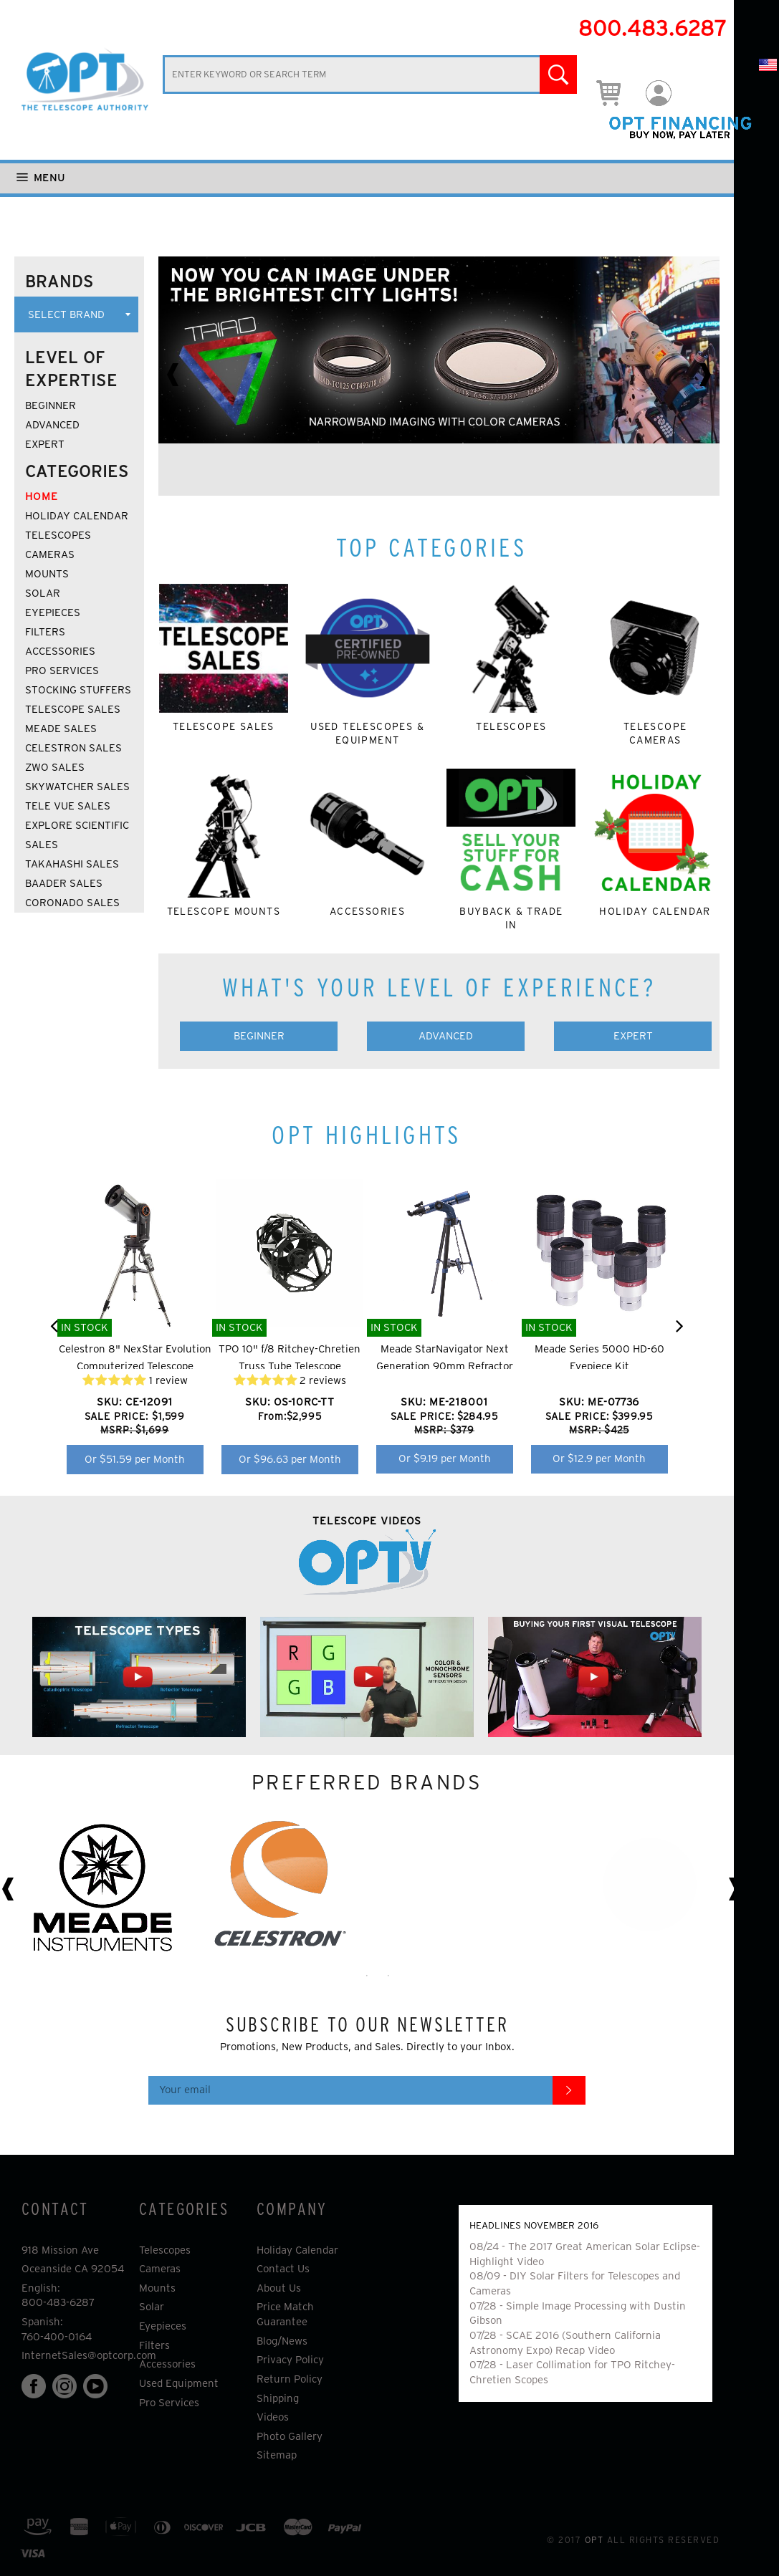 Opt Telescopes Competitors, Revenue and Employees - Owler Company